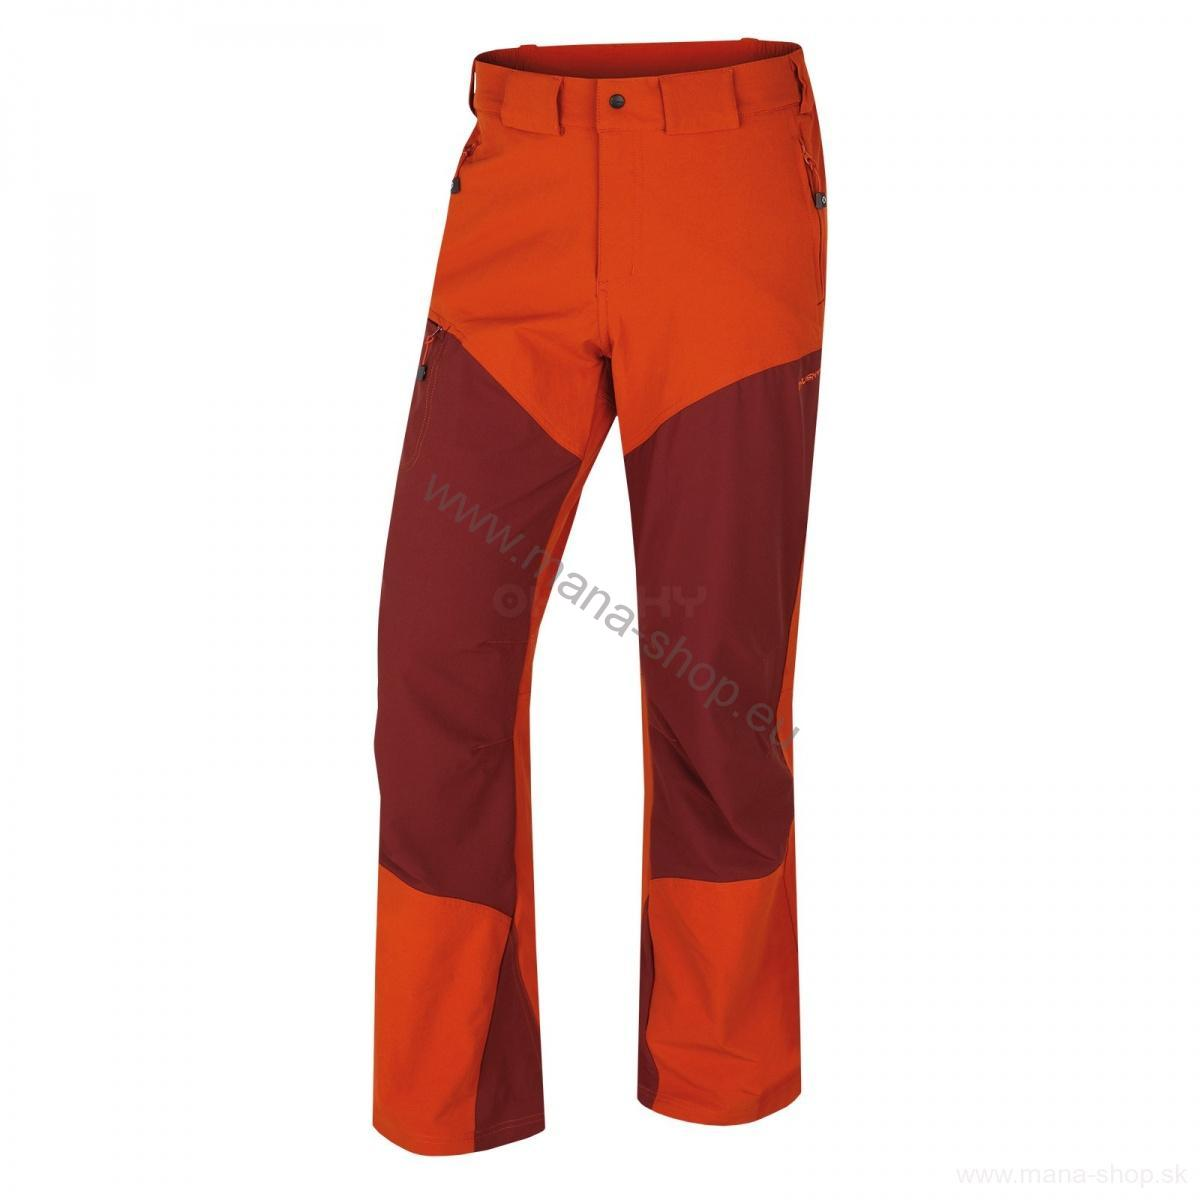 Outdoor Hose KEIRY M NEW braun